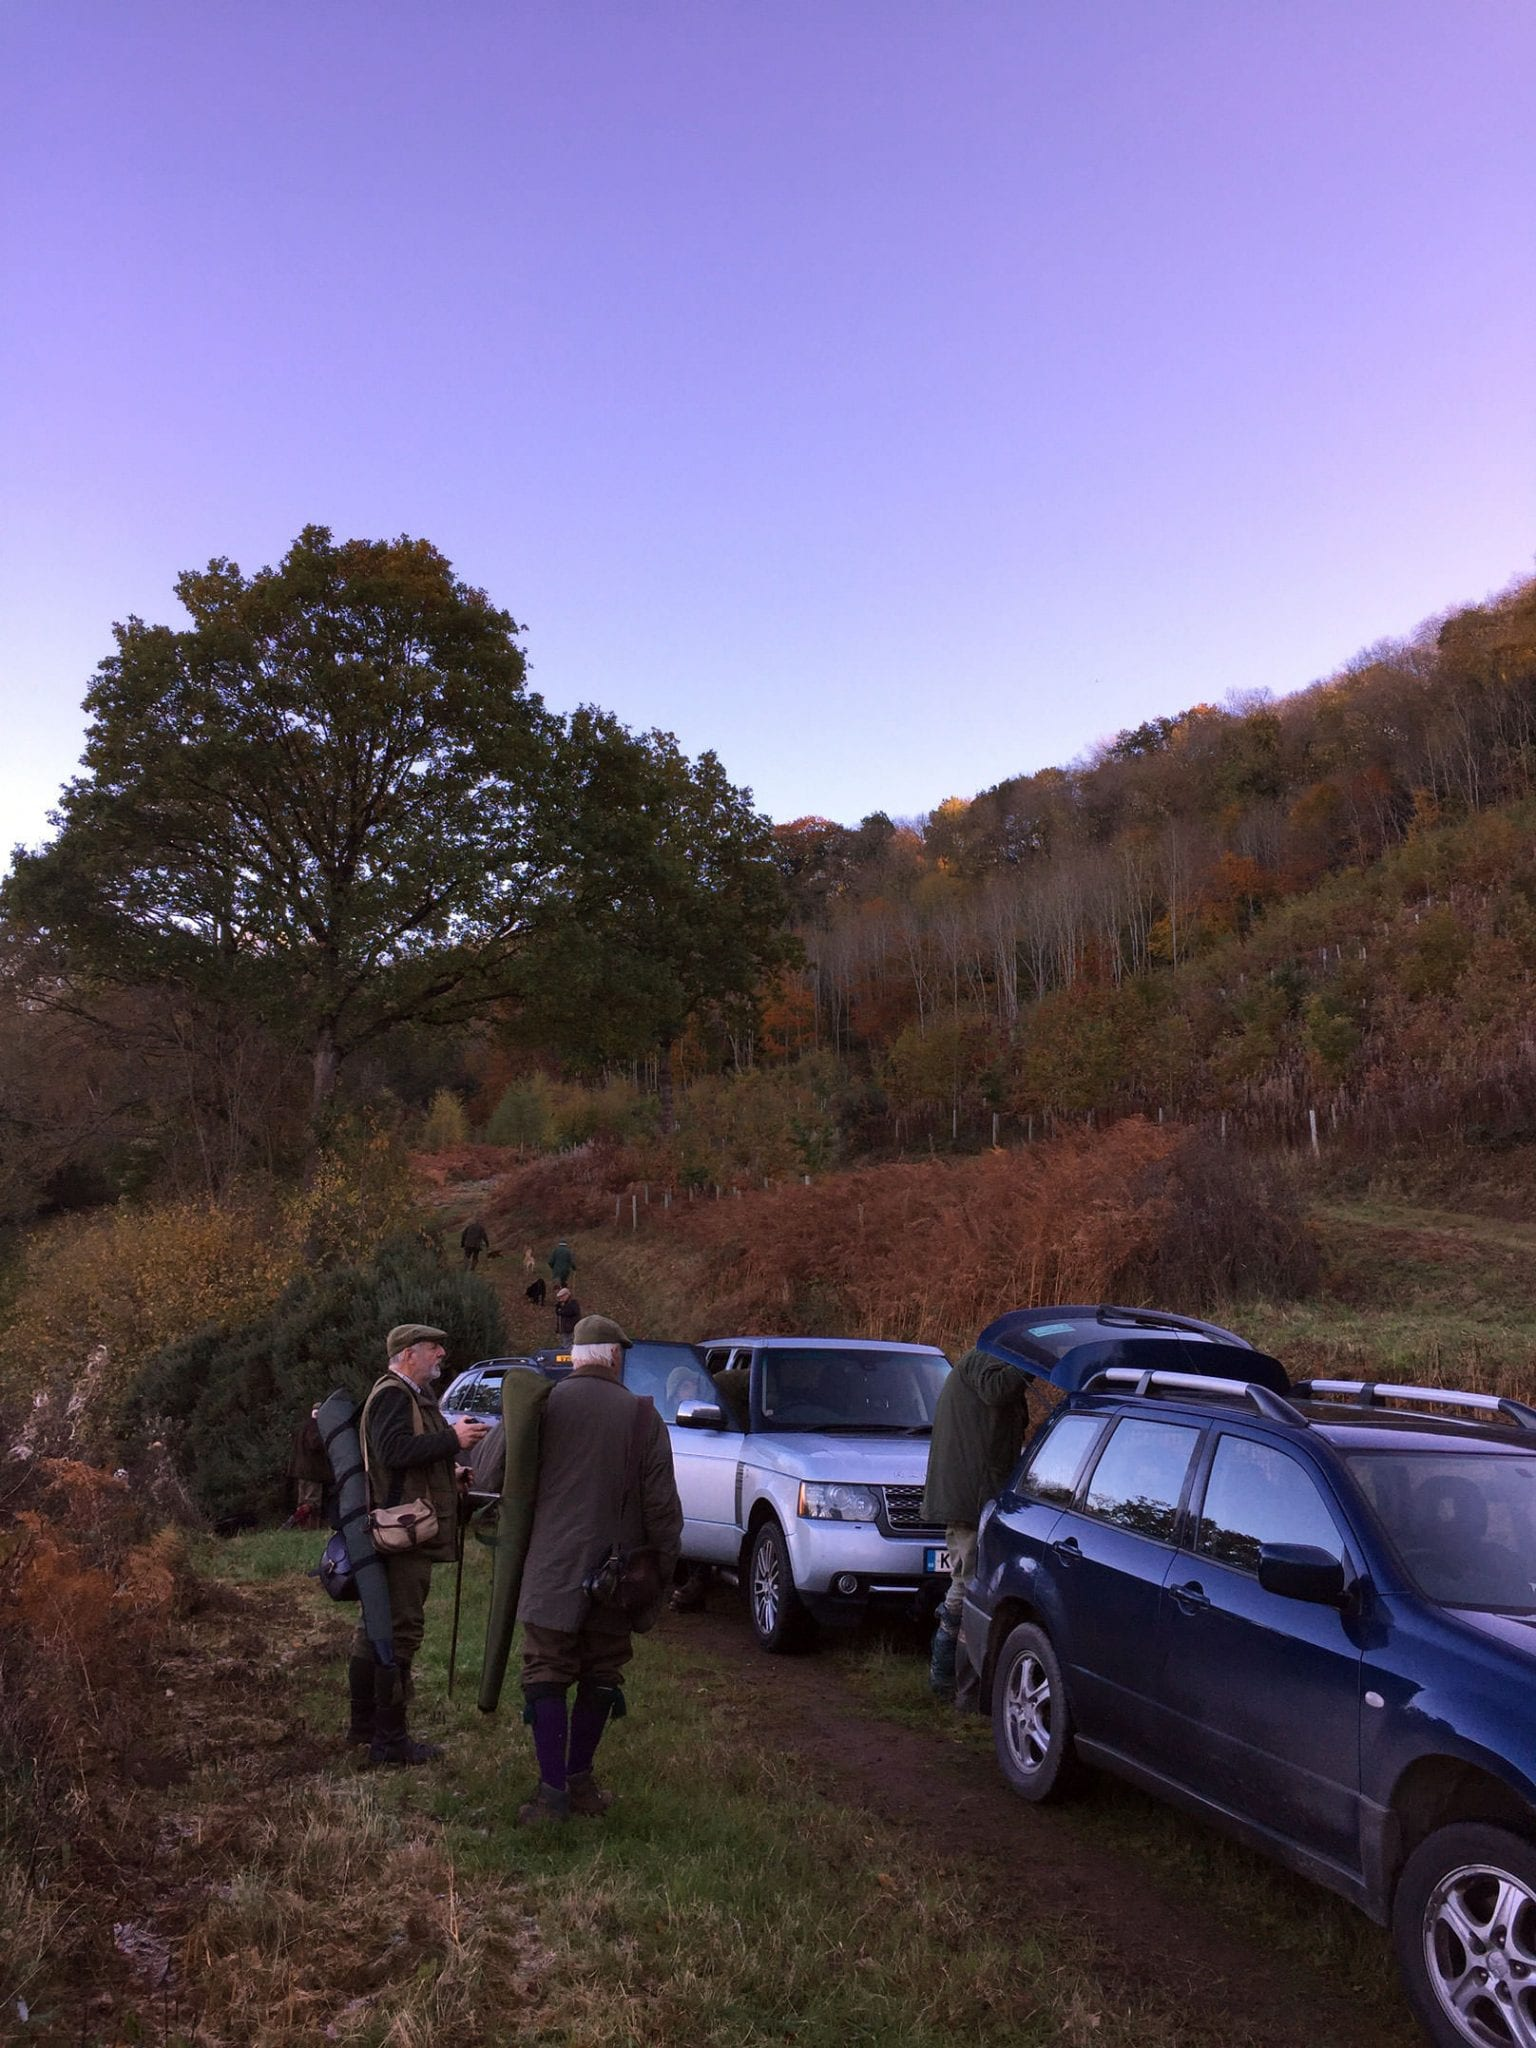 A Group getting ready for game shooting as part of Lady's Wood Shooting School's Sporting Agency